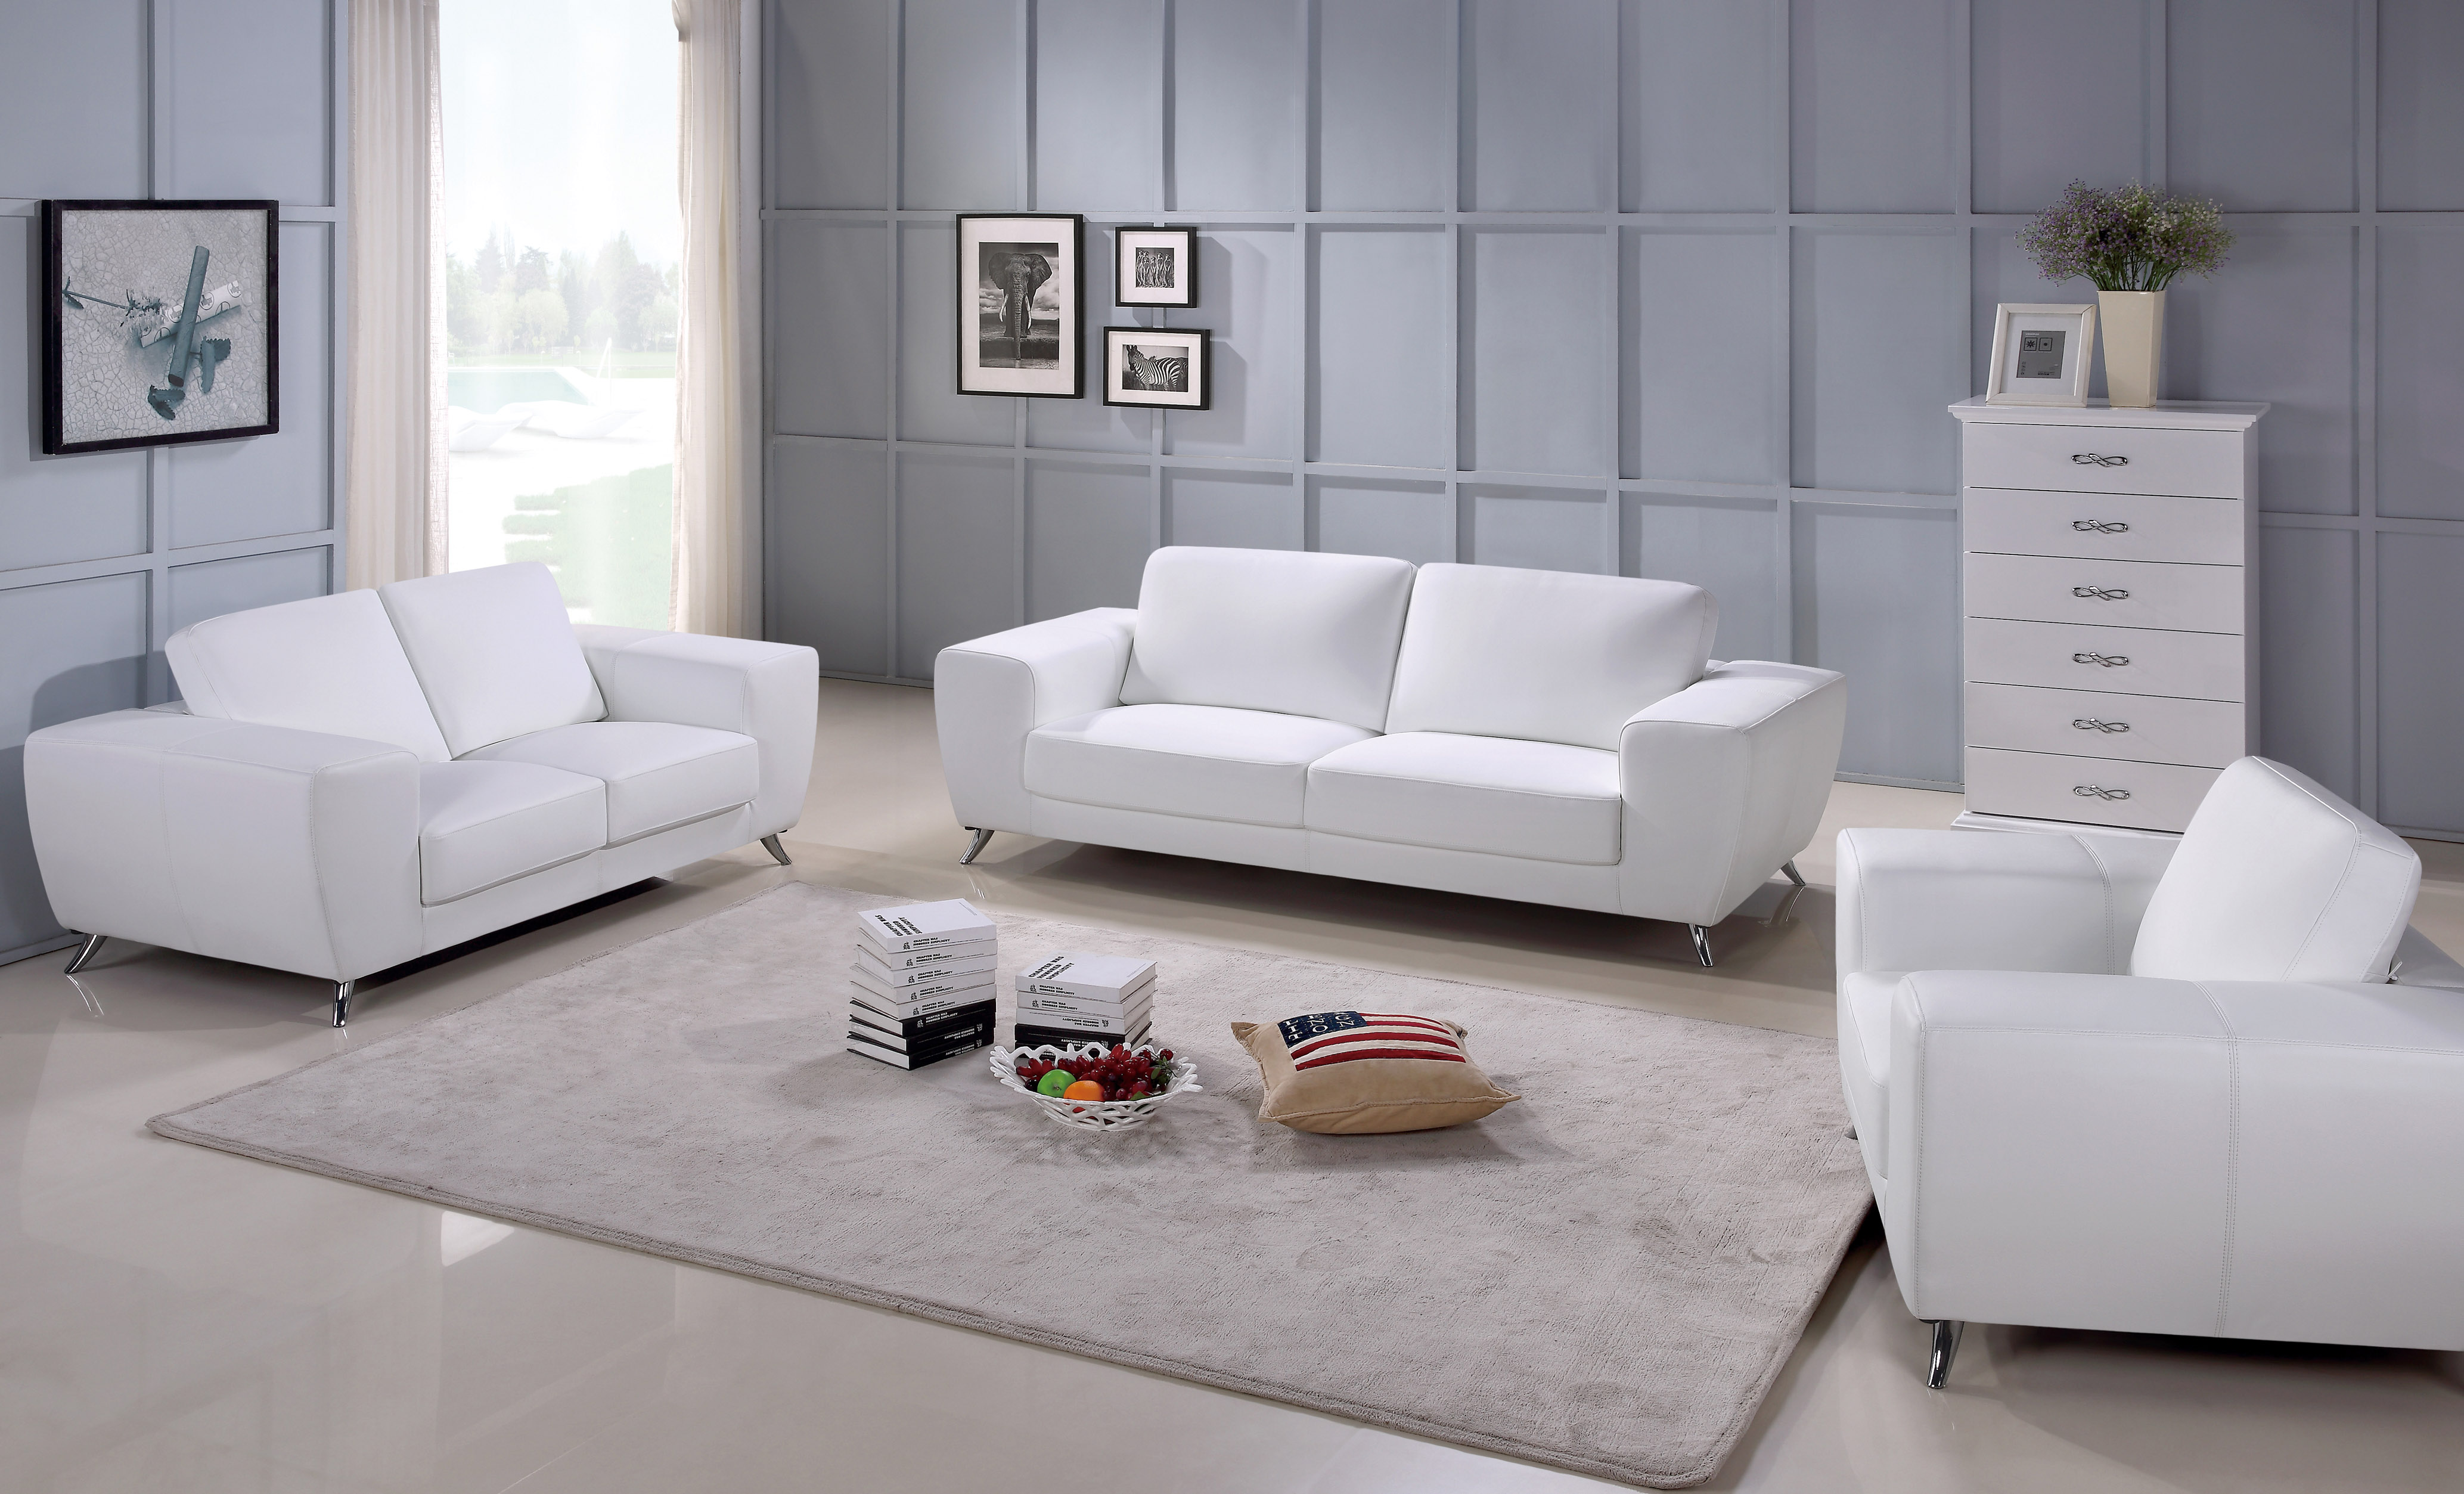 leather sofa washington dc small beds for narrow boats julie contemporary set with italian